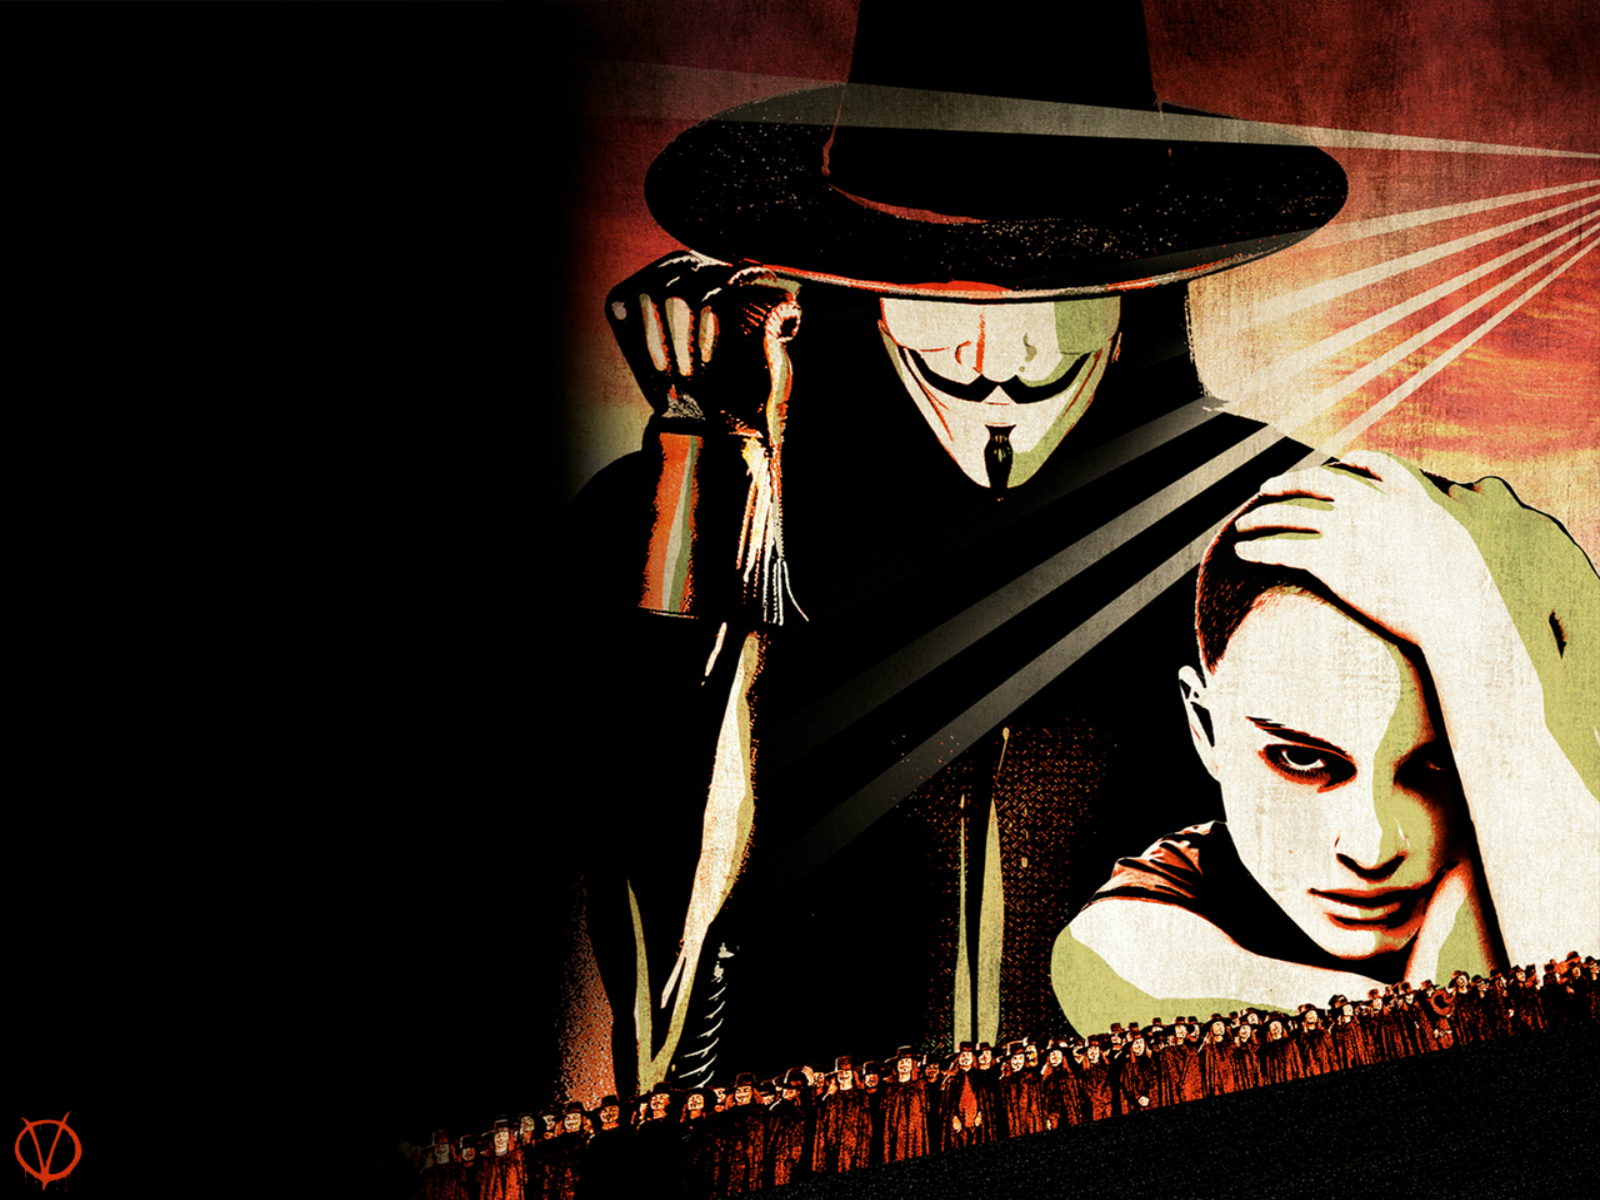 http://2.bp.blogspot.com/-F4Ud6M5Lxnk/TlrMag4aJjI/AAAAAAAAAus/4aotEOjrUdI/s1600/V_for_vendetta_Natalie_portman_movies_anime_cartoon_guy_fawkes_www.Vvallpaper.net.jpg